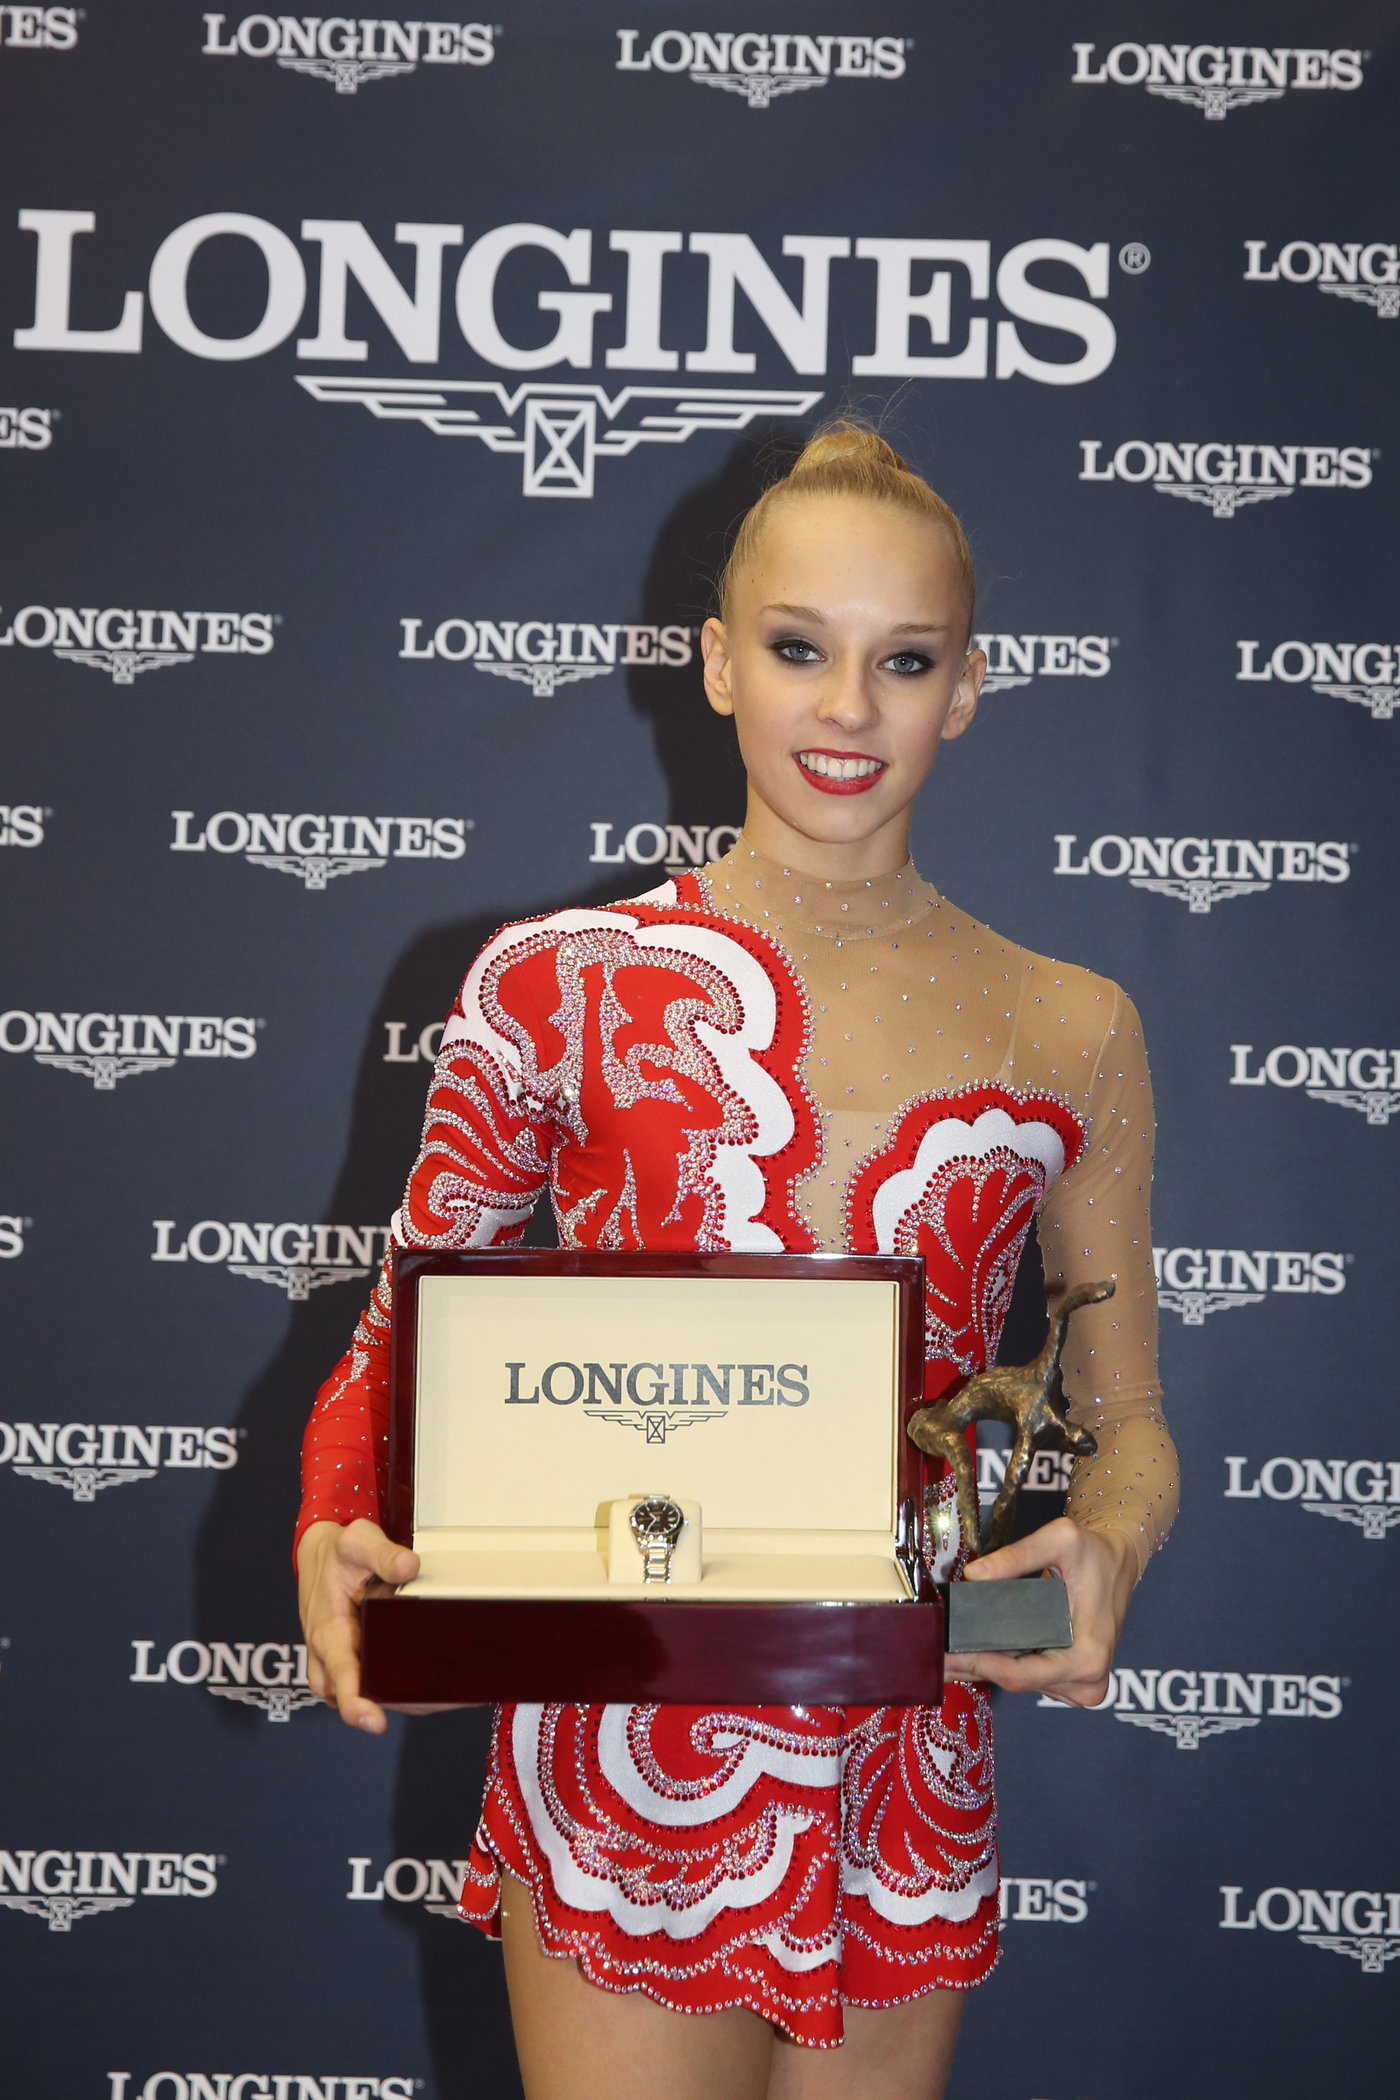 Longines Gymnastics Event: The Longines Prize for Elegance awarded to Yana Kudryavtseva at the 33rd Rhythmic Gymnastics World Championships 2014 in Izmir 3